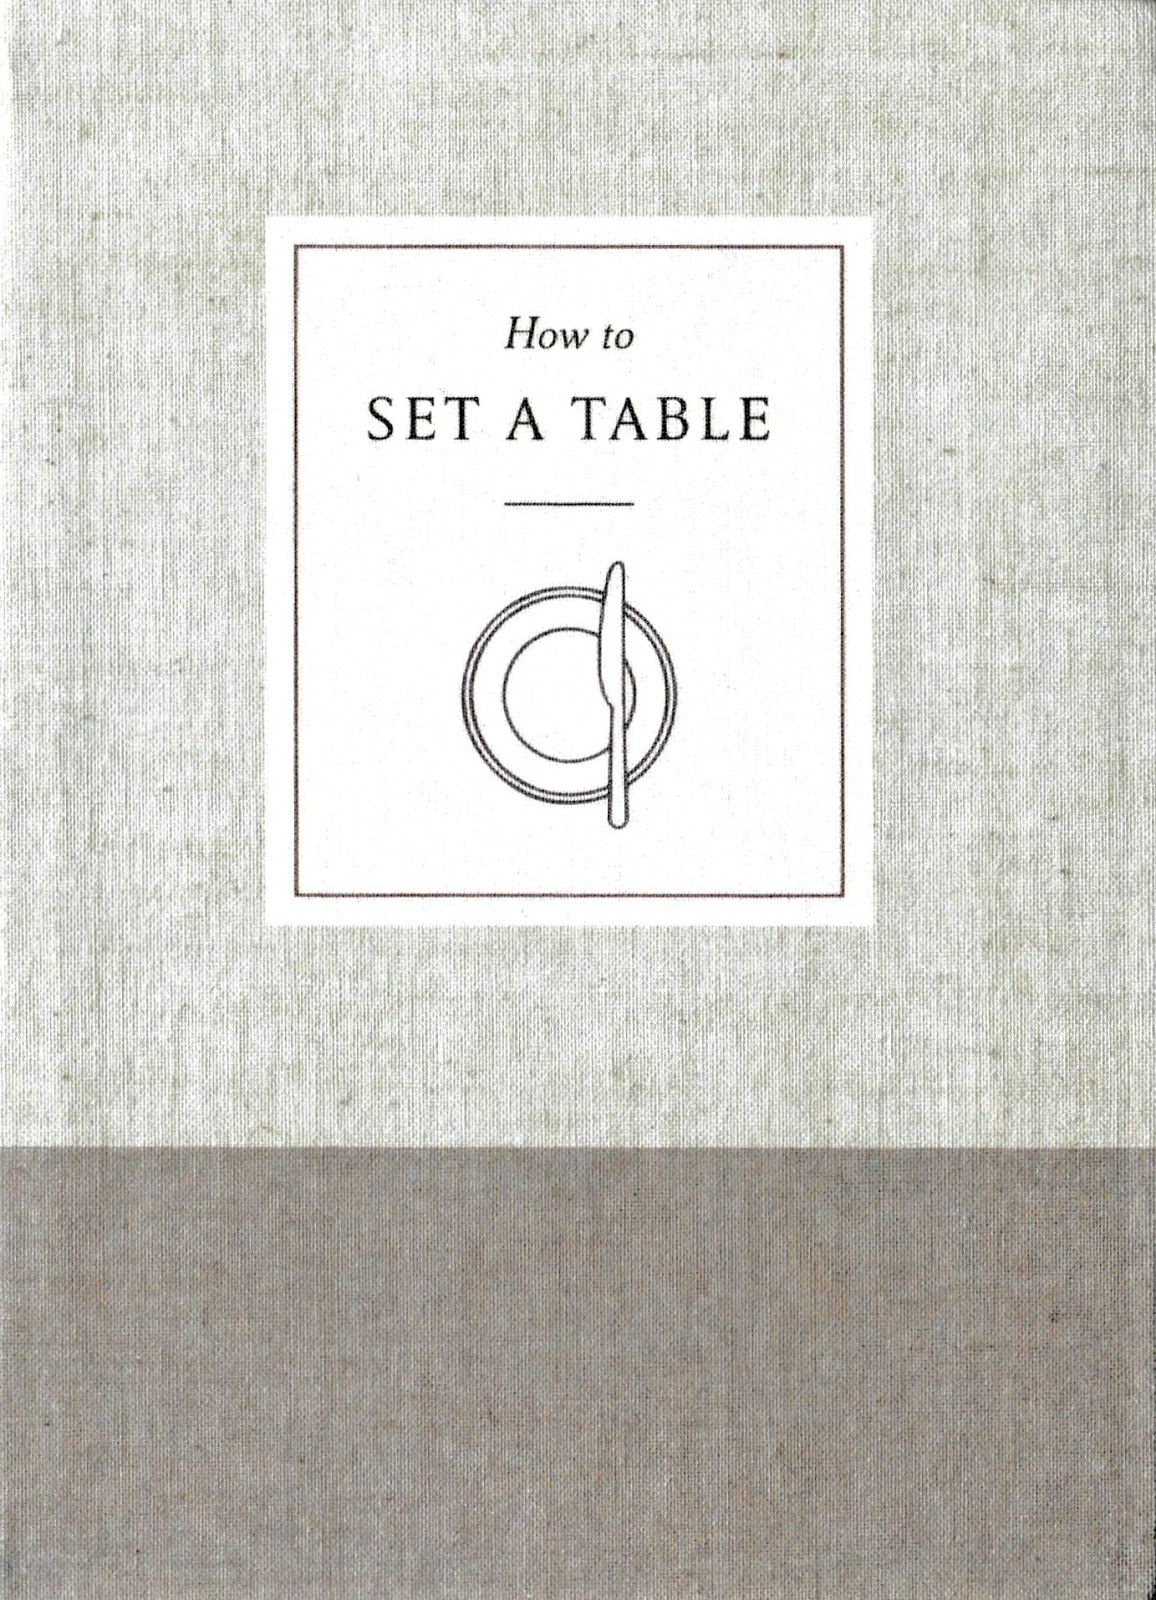 Olla-Podrida: How to Set a Table, a Review